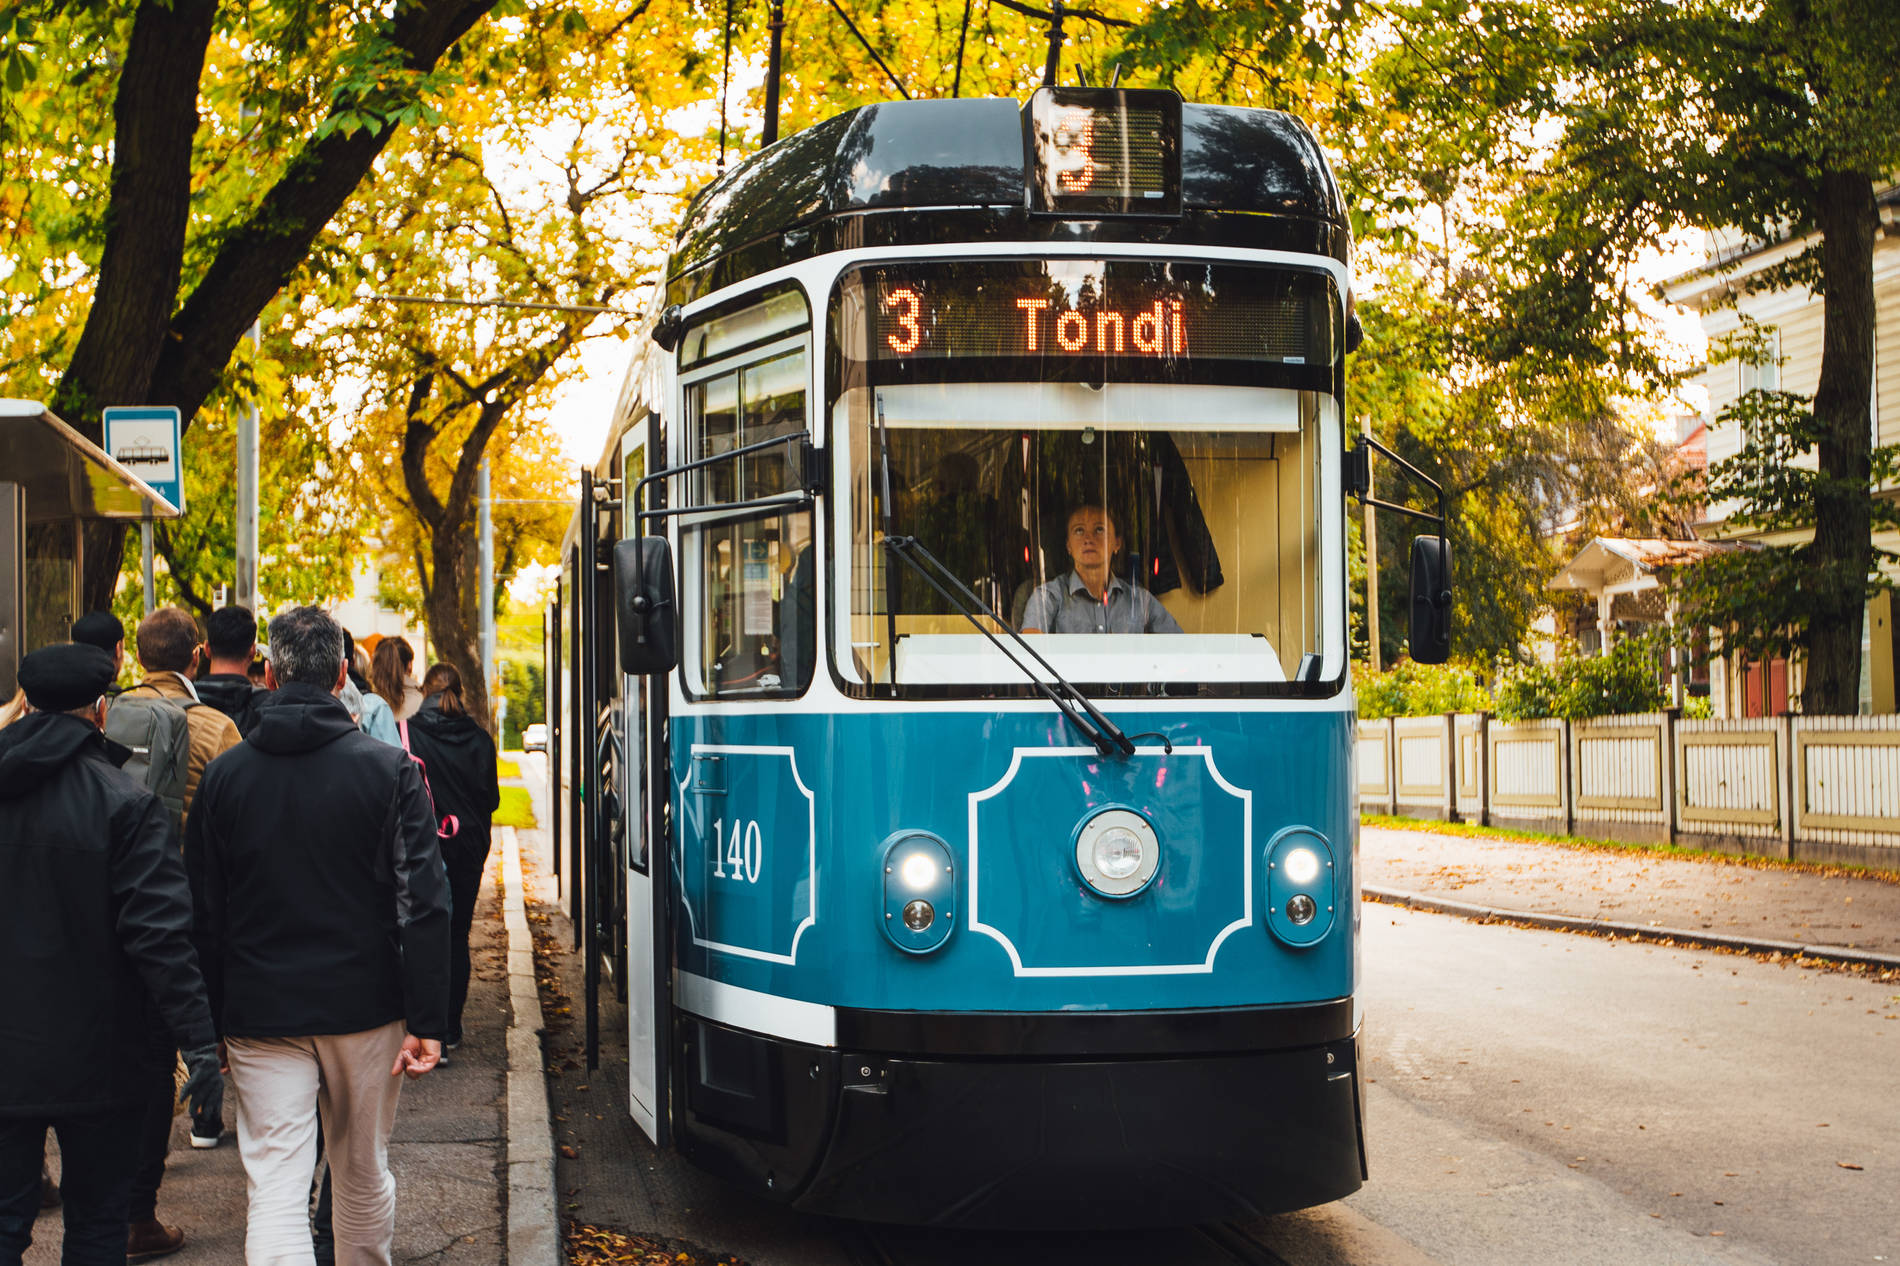 Tram in Kadriorg, Tallinn, Estonia.